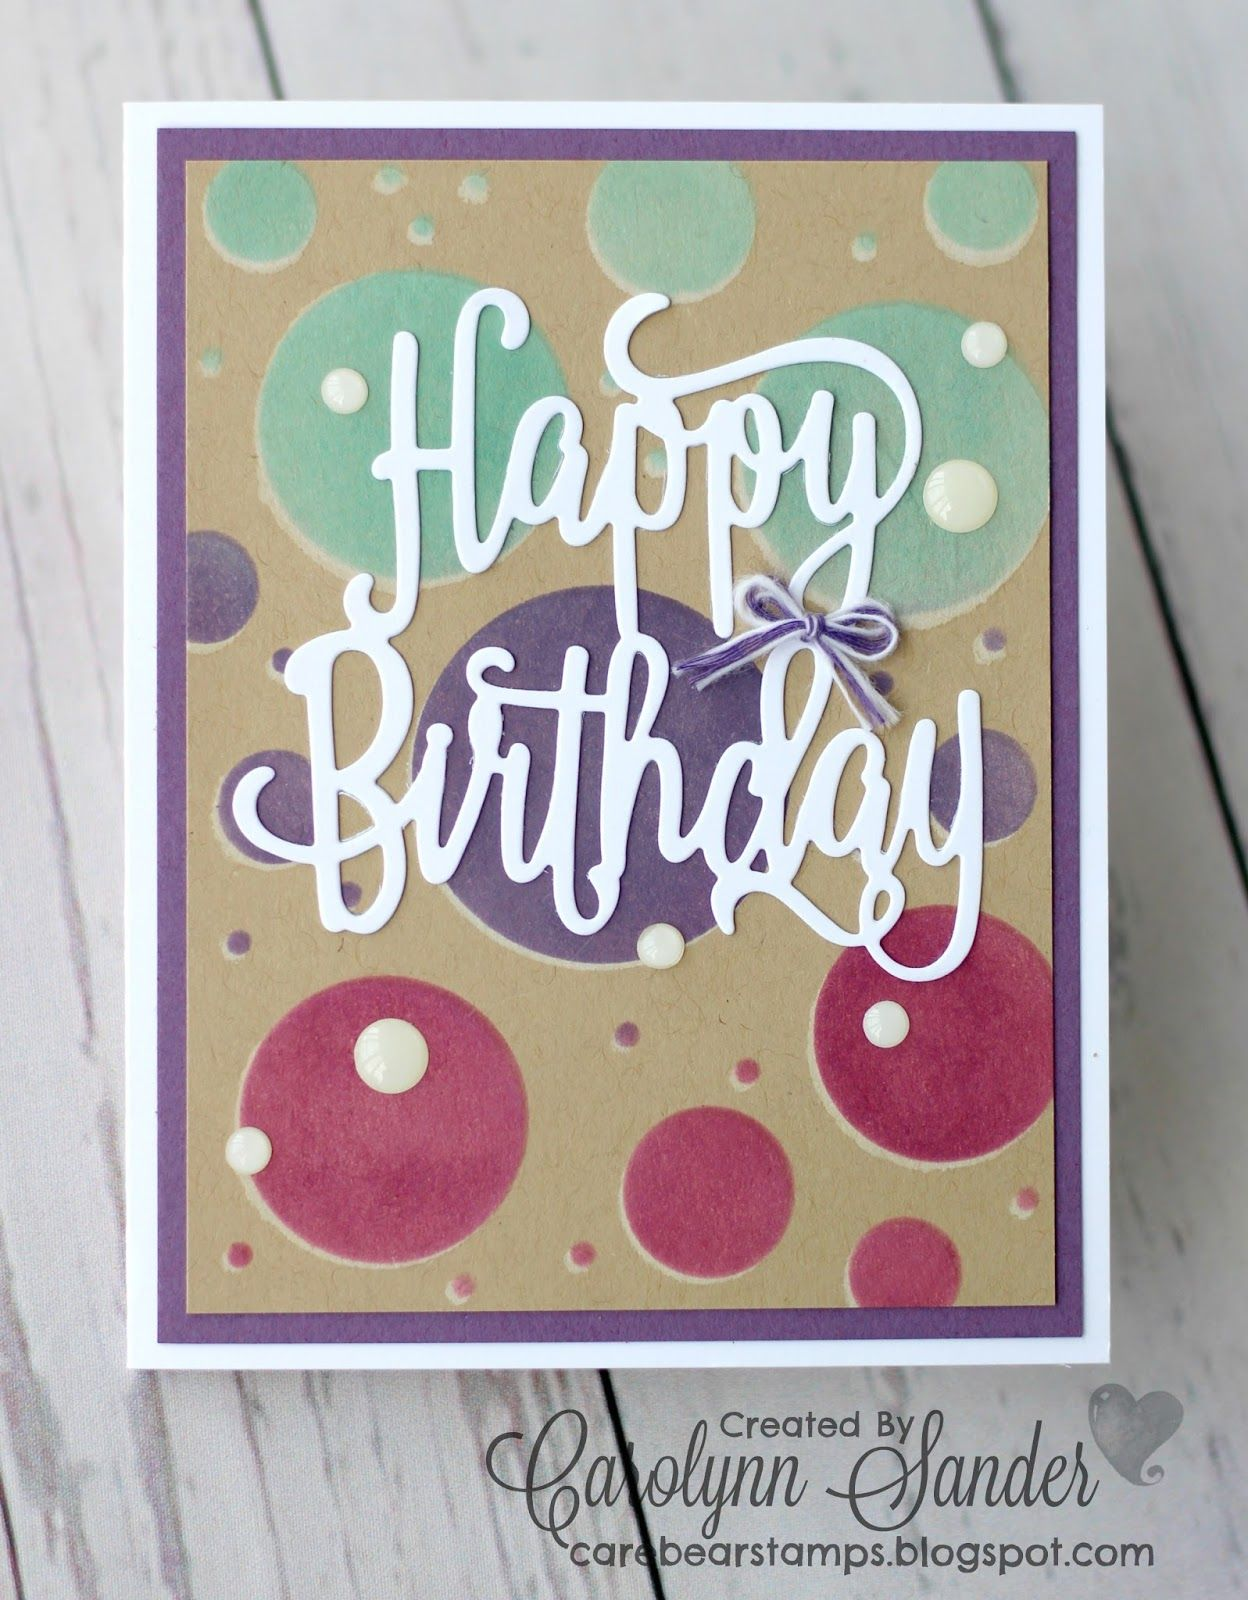 Stampin Up Canada Demonstrator Website For Stamping Card Making